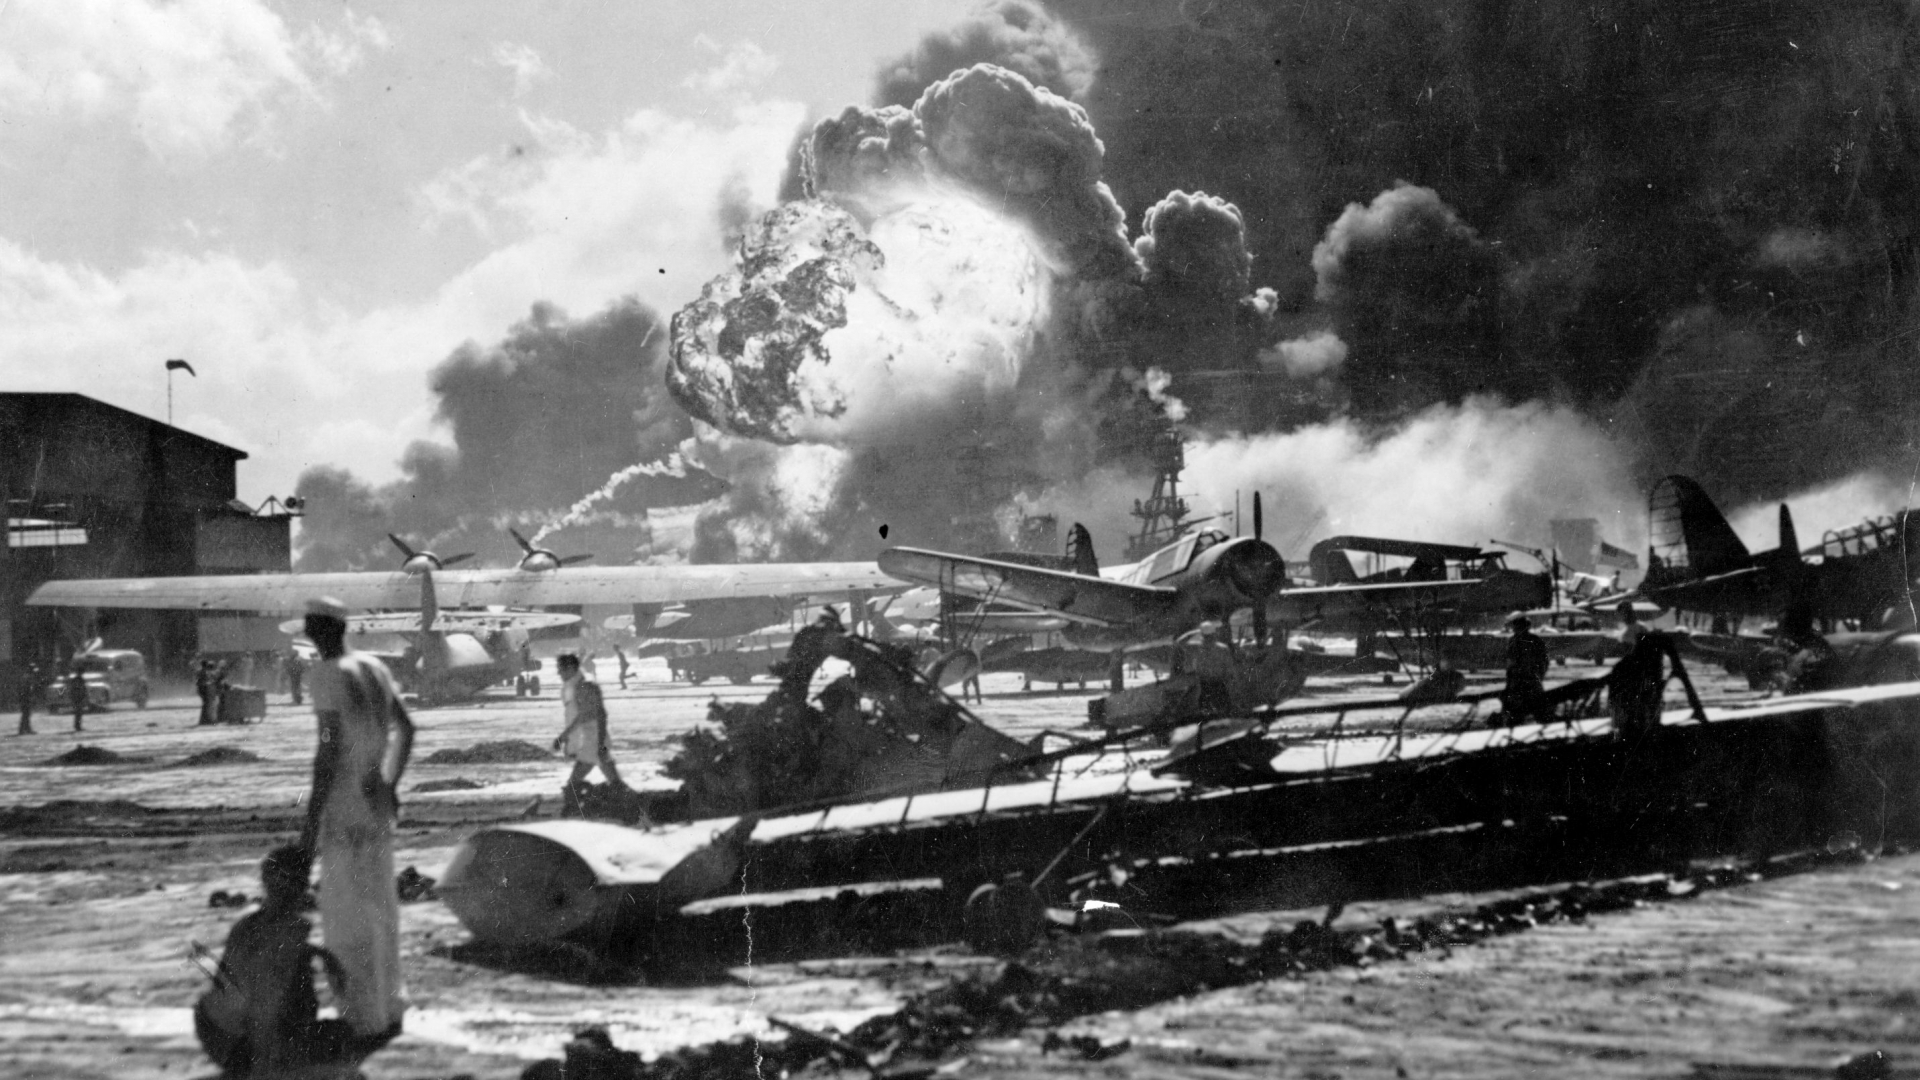 An explosion at the Naval Air Station during the Japanese attack at Pearl Harbor. Sailors stand amid wrecked watching as the USS Shaw explodes in the center background. The USS Nevada is also visible in the middle background, with her bow headed toward the left. (Credit: Fox Photos/Getty Images)